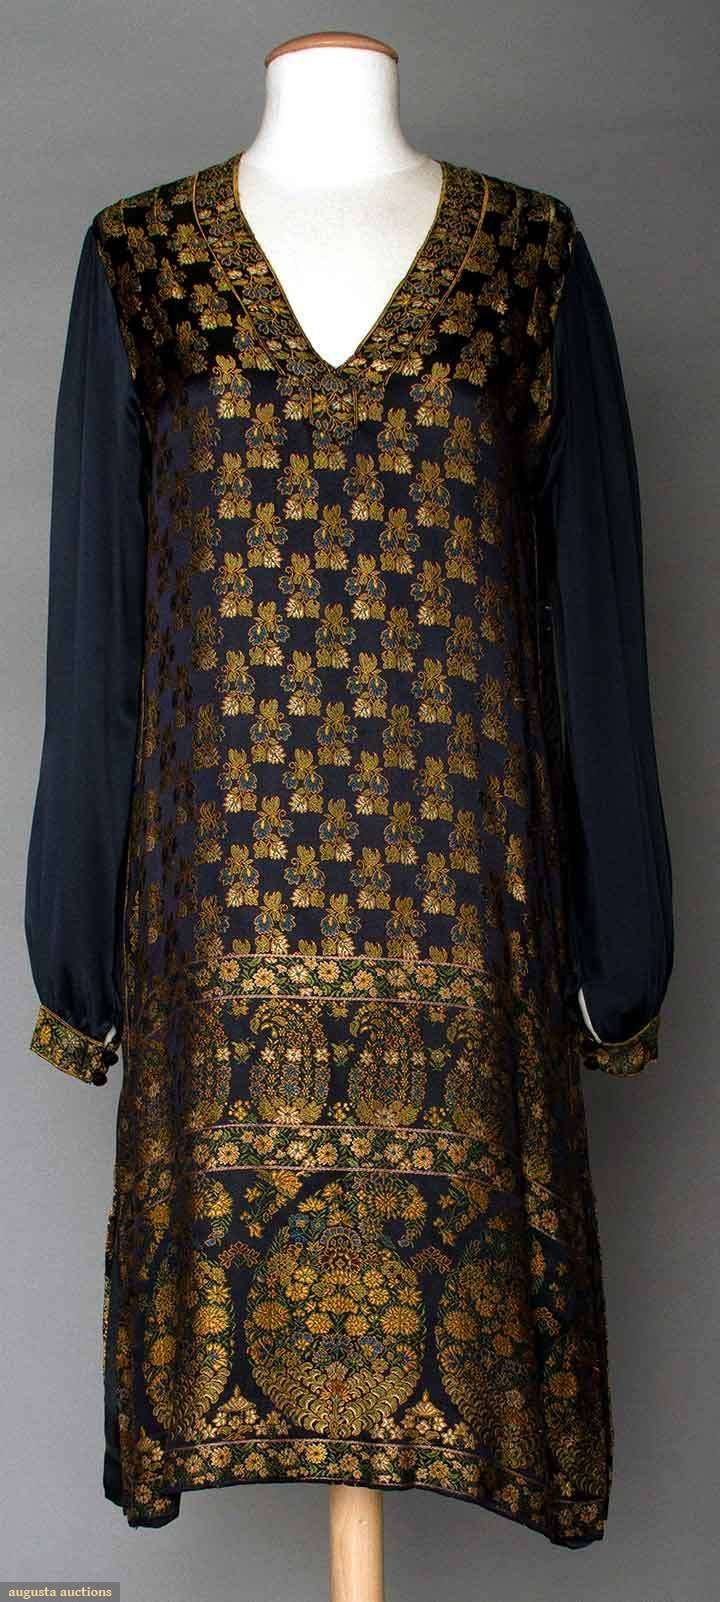 "SILK BROCADE DAY DRESS, 1920s  Navy satin ground w/ Persian inspired boteh & small flower pattern in gold & green, V neck, B "", H "", L "", excellent."